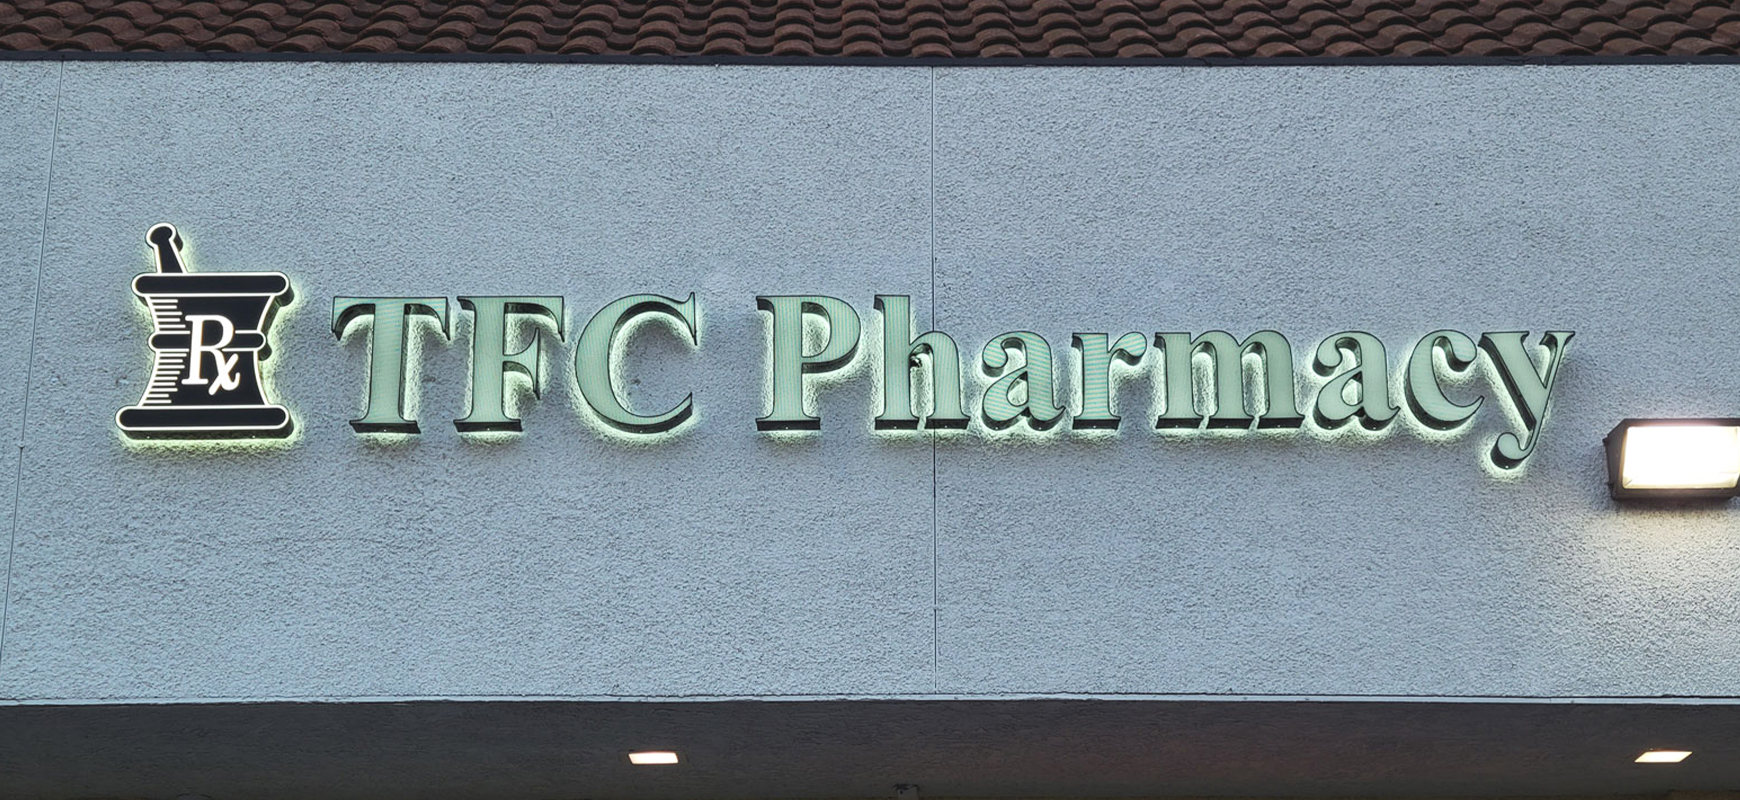 tfc-pharmacy-illuminated-signs